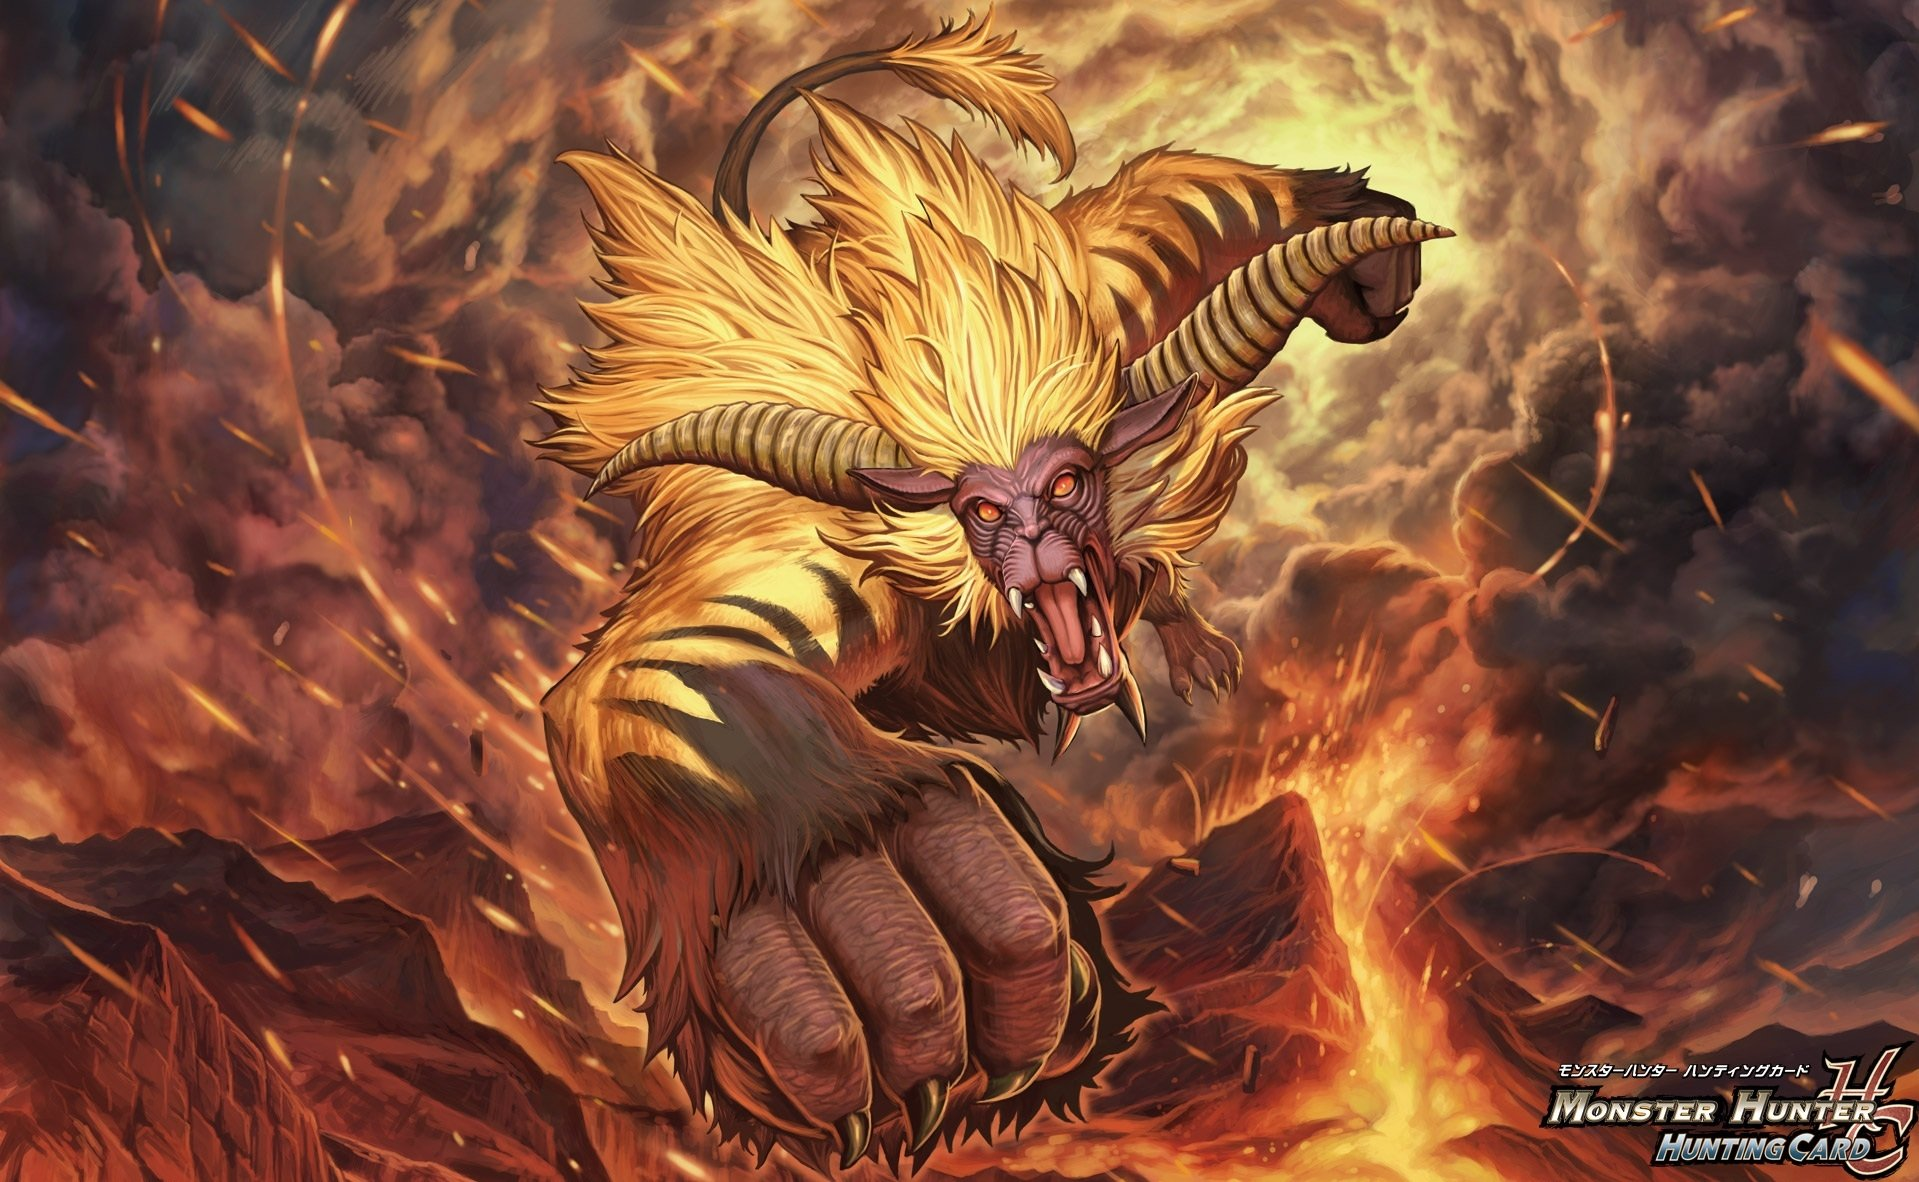 Video Game - Monster Hunter  Rajang (Monster Hunter) Wallpaper